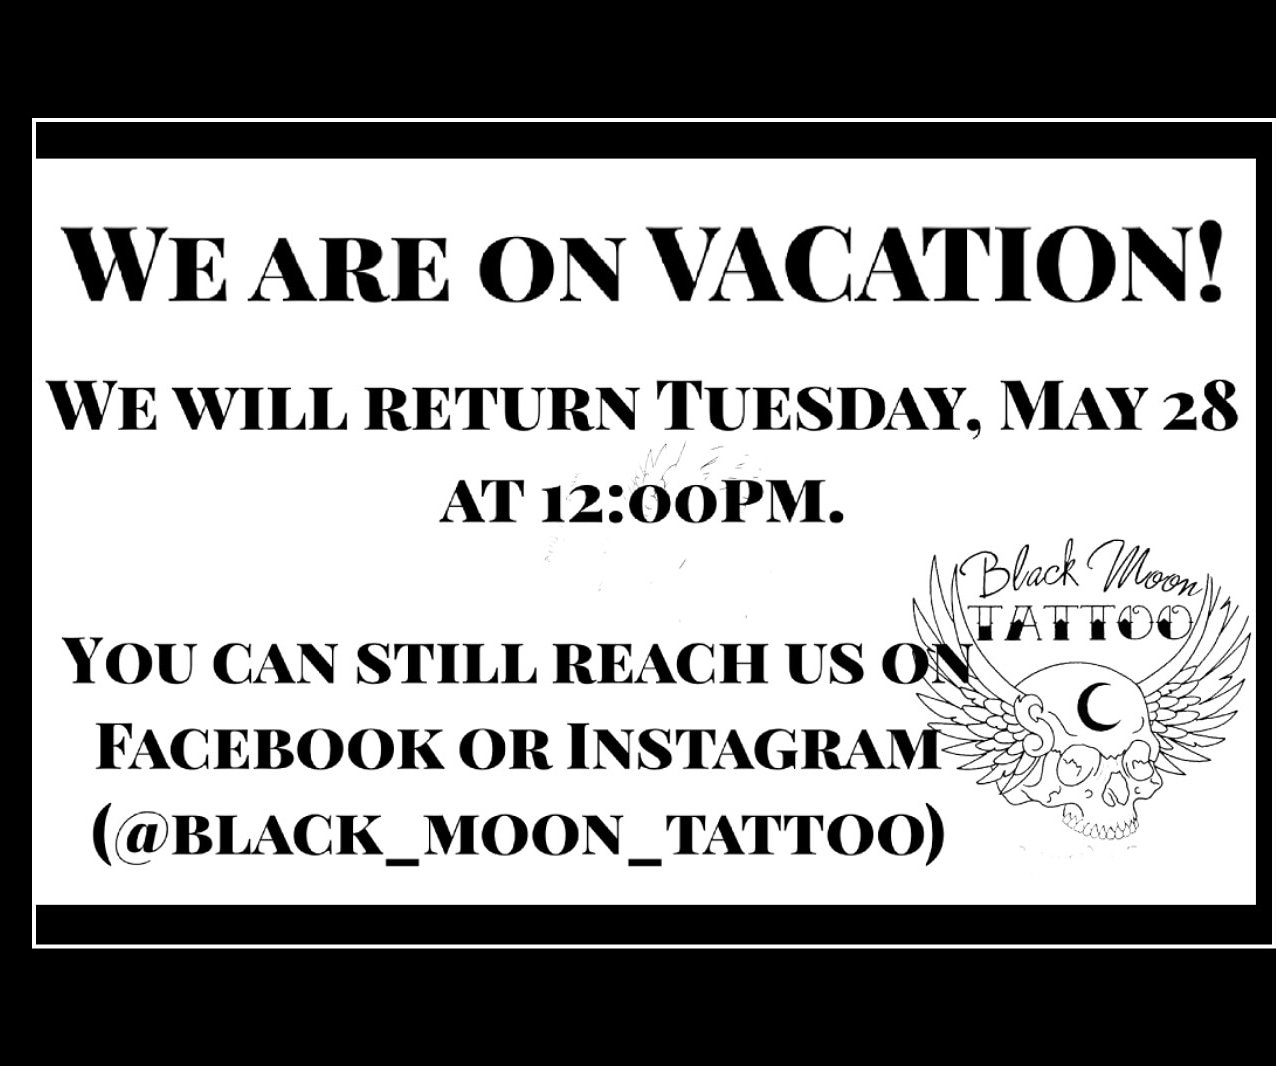 on vacation message